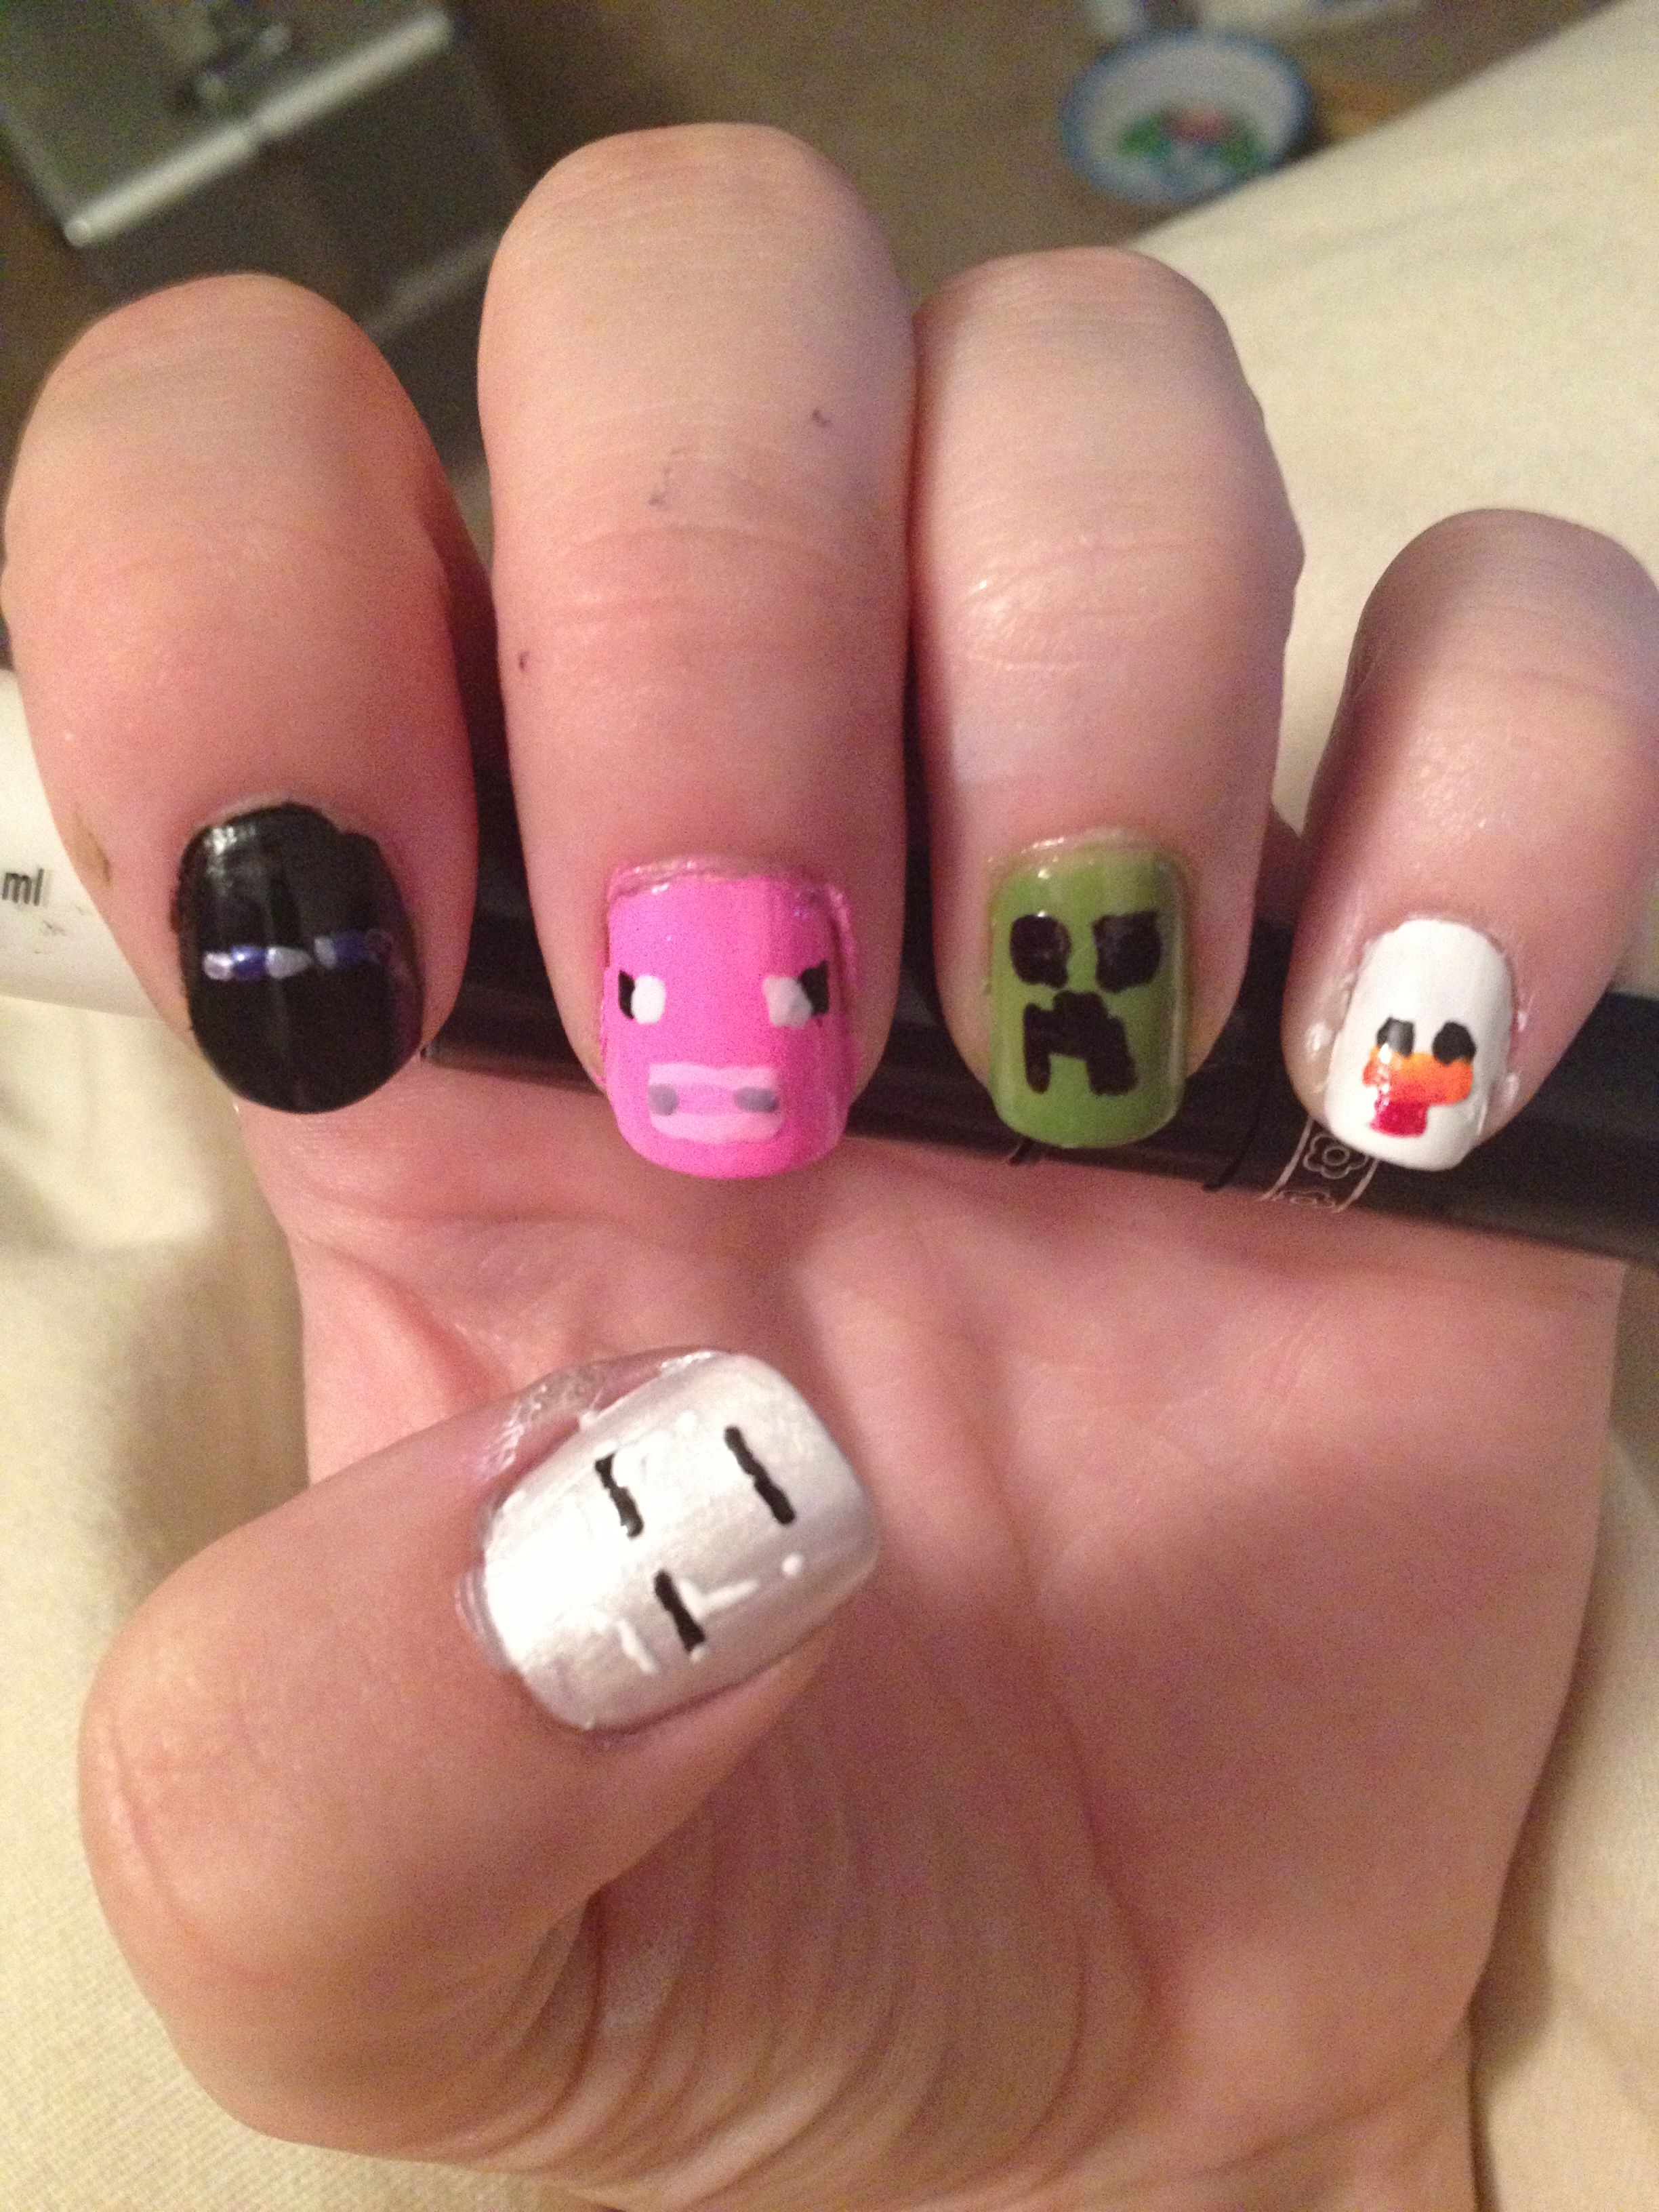 Minecraft nails by using Migi nail art pens. | Gamer Nail Art ...